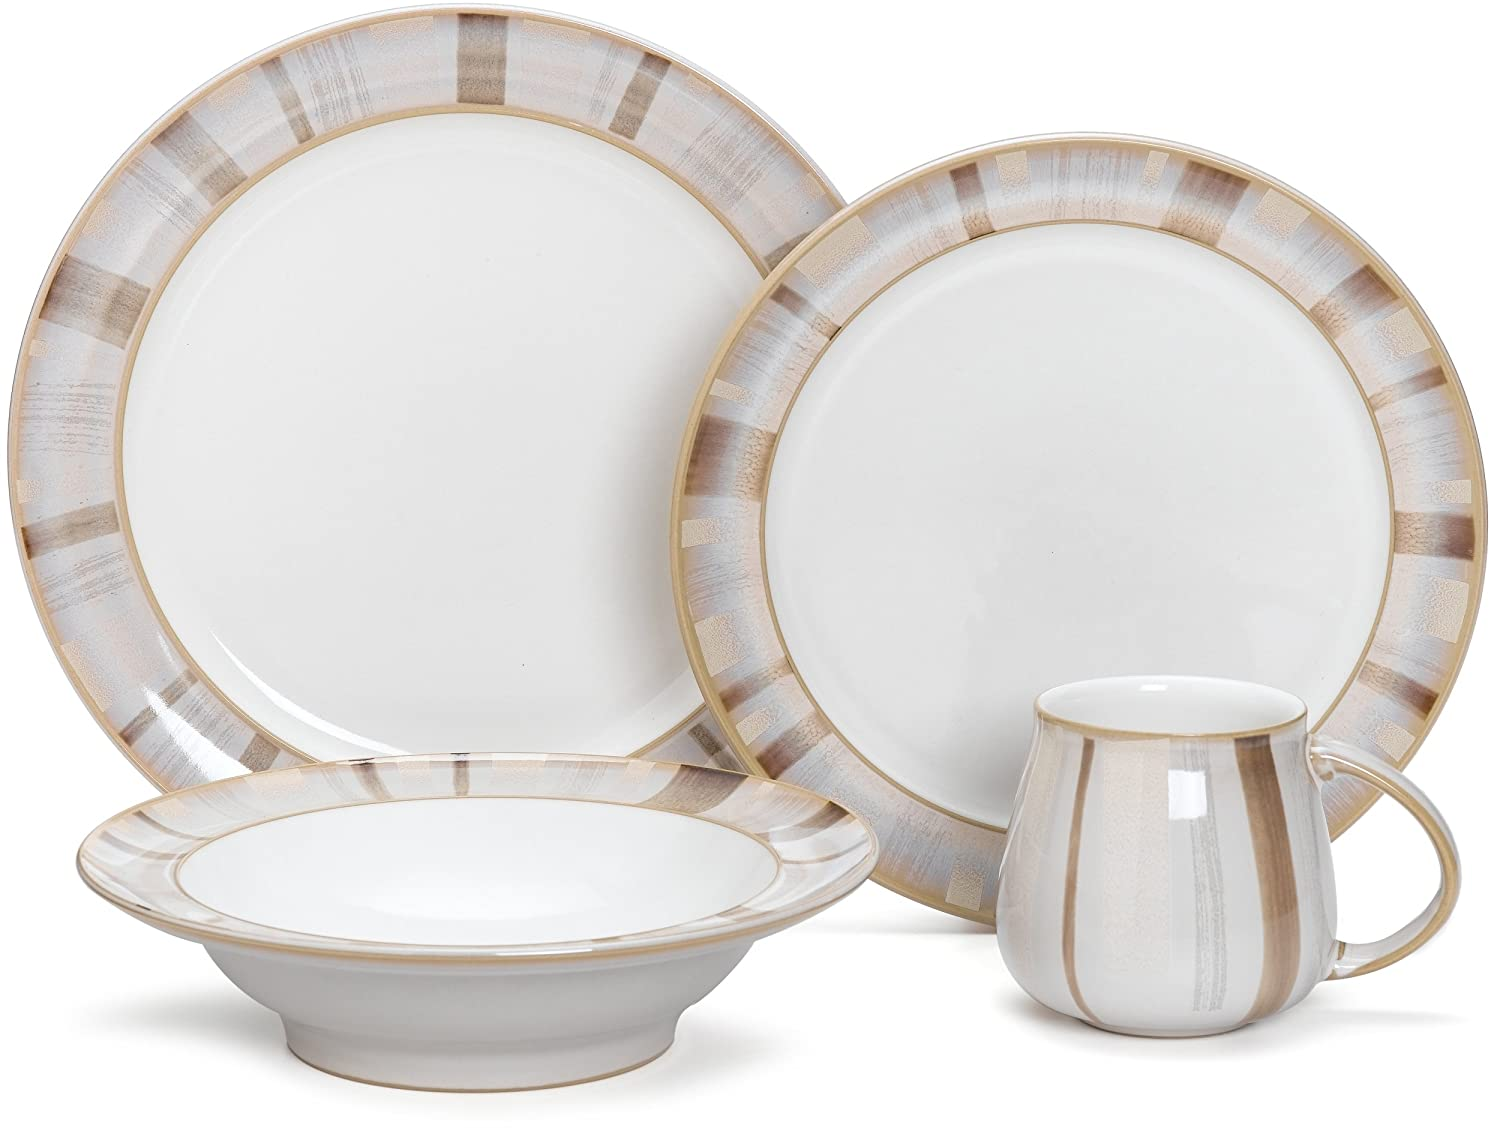 柔らかい Denby Truffle Layers 4-Piece Place 4 B001U0PC9S Setting, Service for Denby 1 by Denby 4 PC Set B001U0PC9S, ハウスダイレクトさくら:e236cd53 --- a0267596.xsph.ru